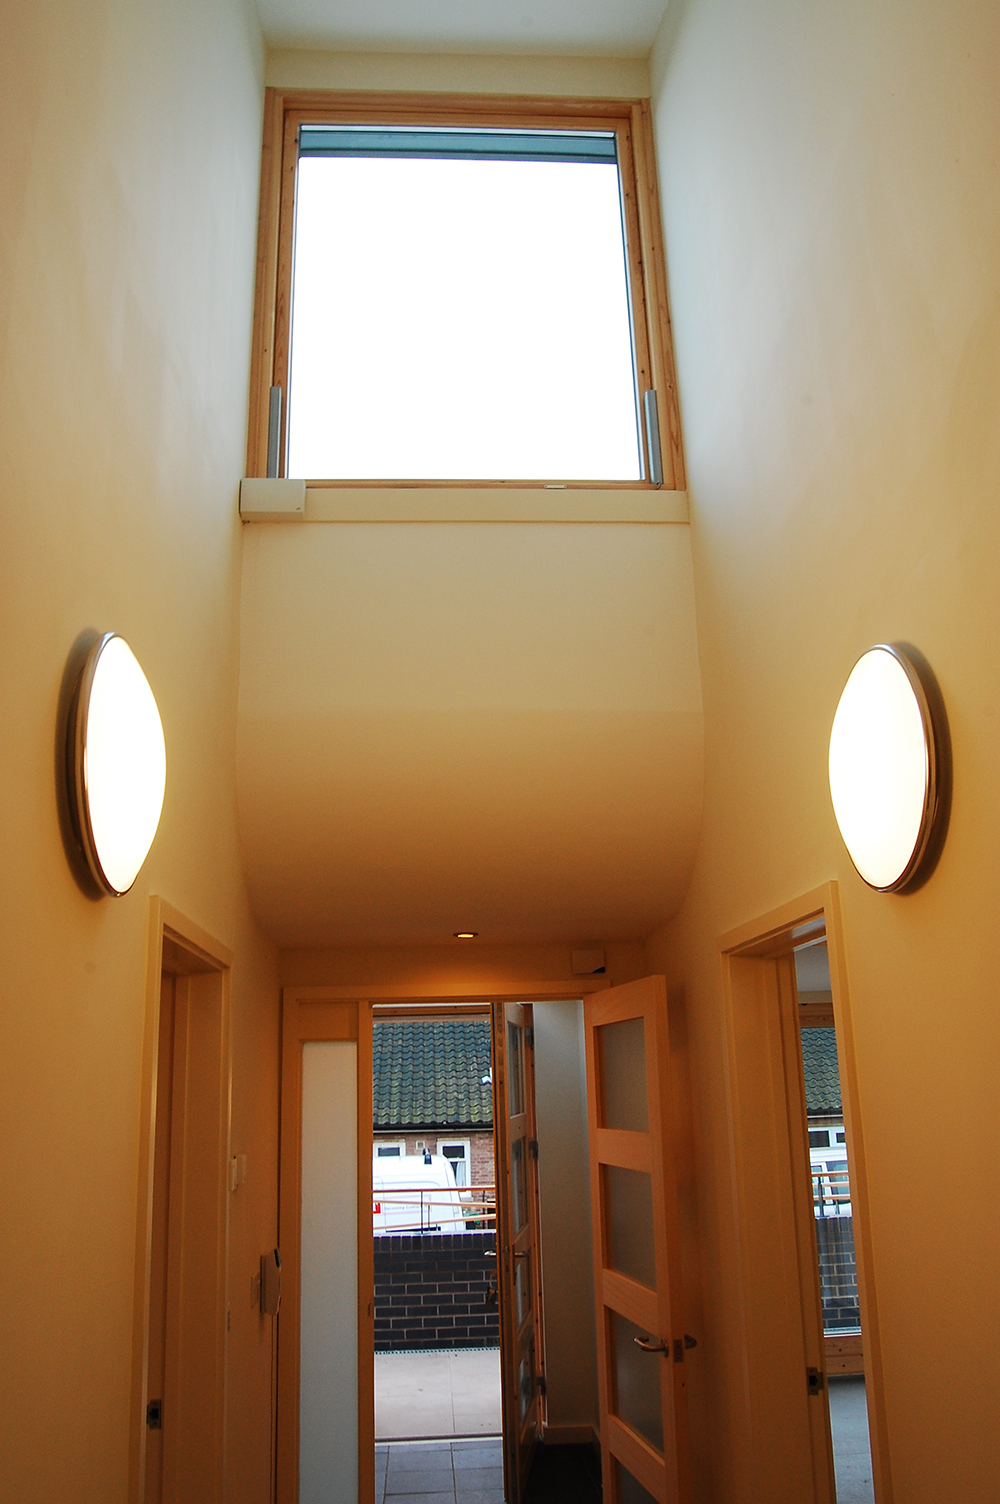 internal photo of window with lights